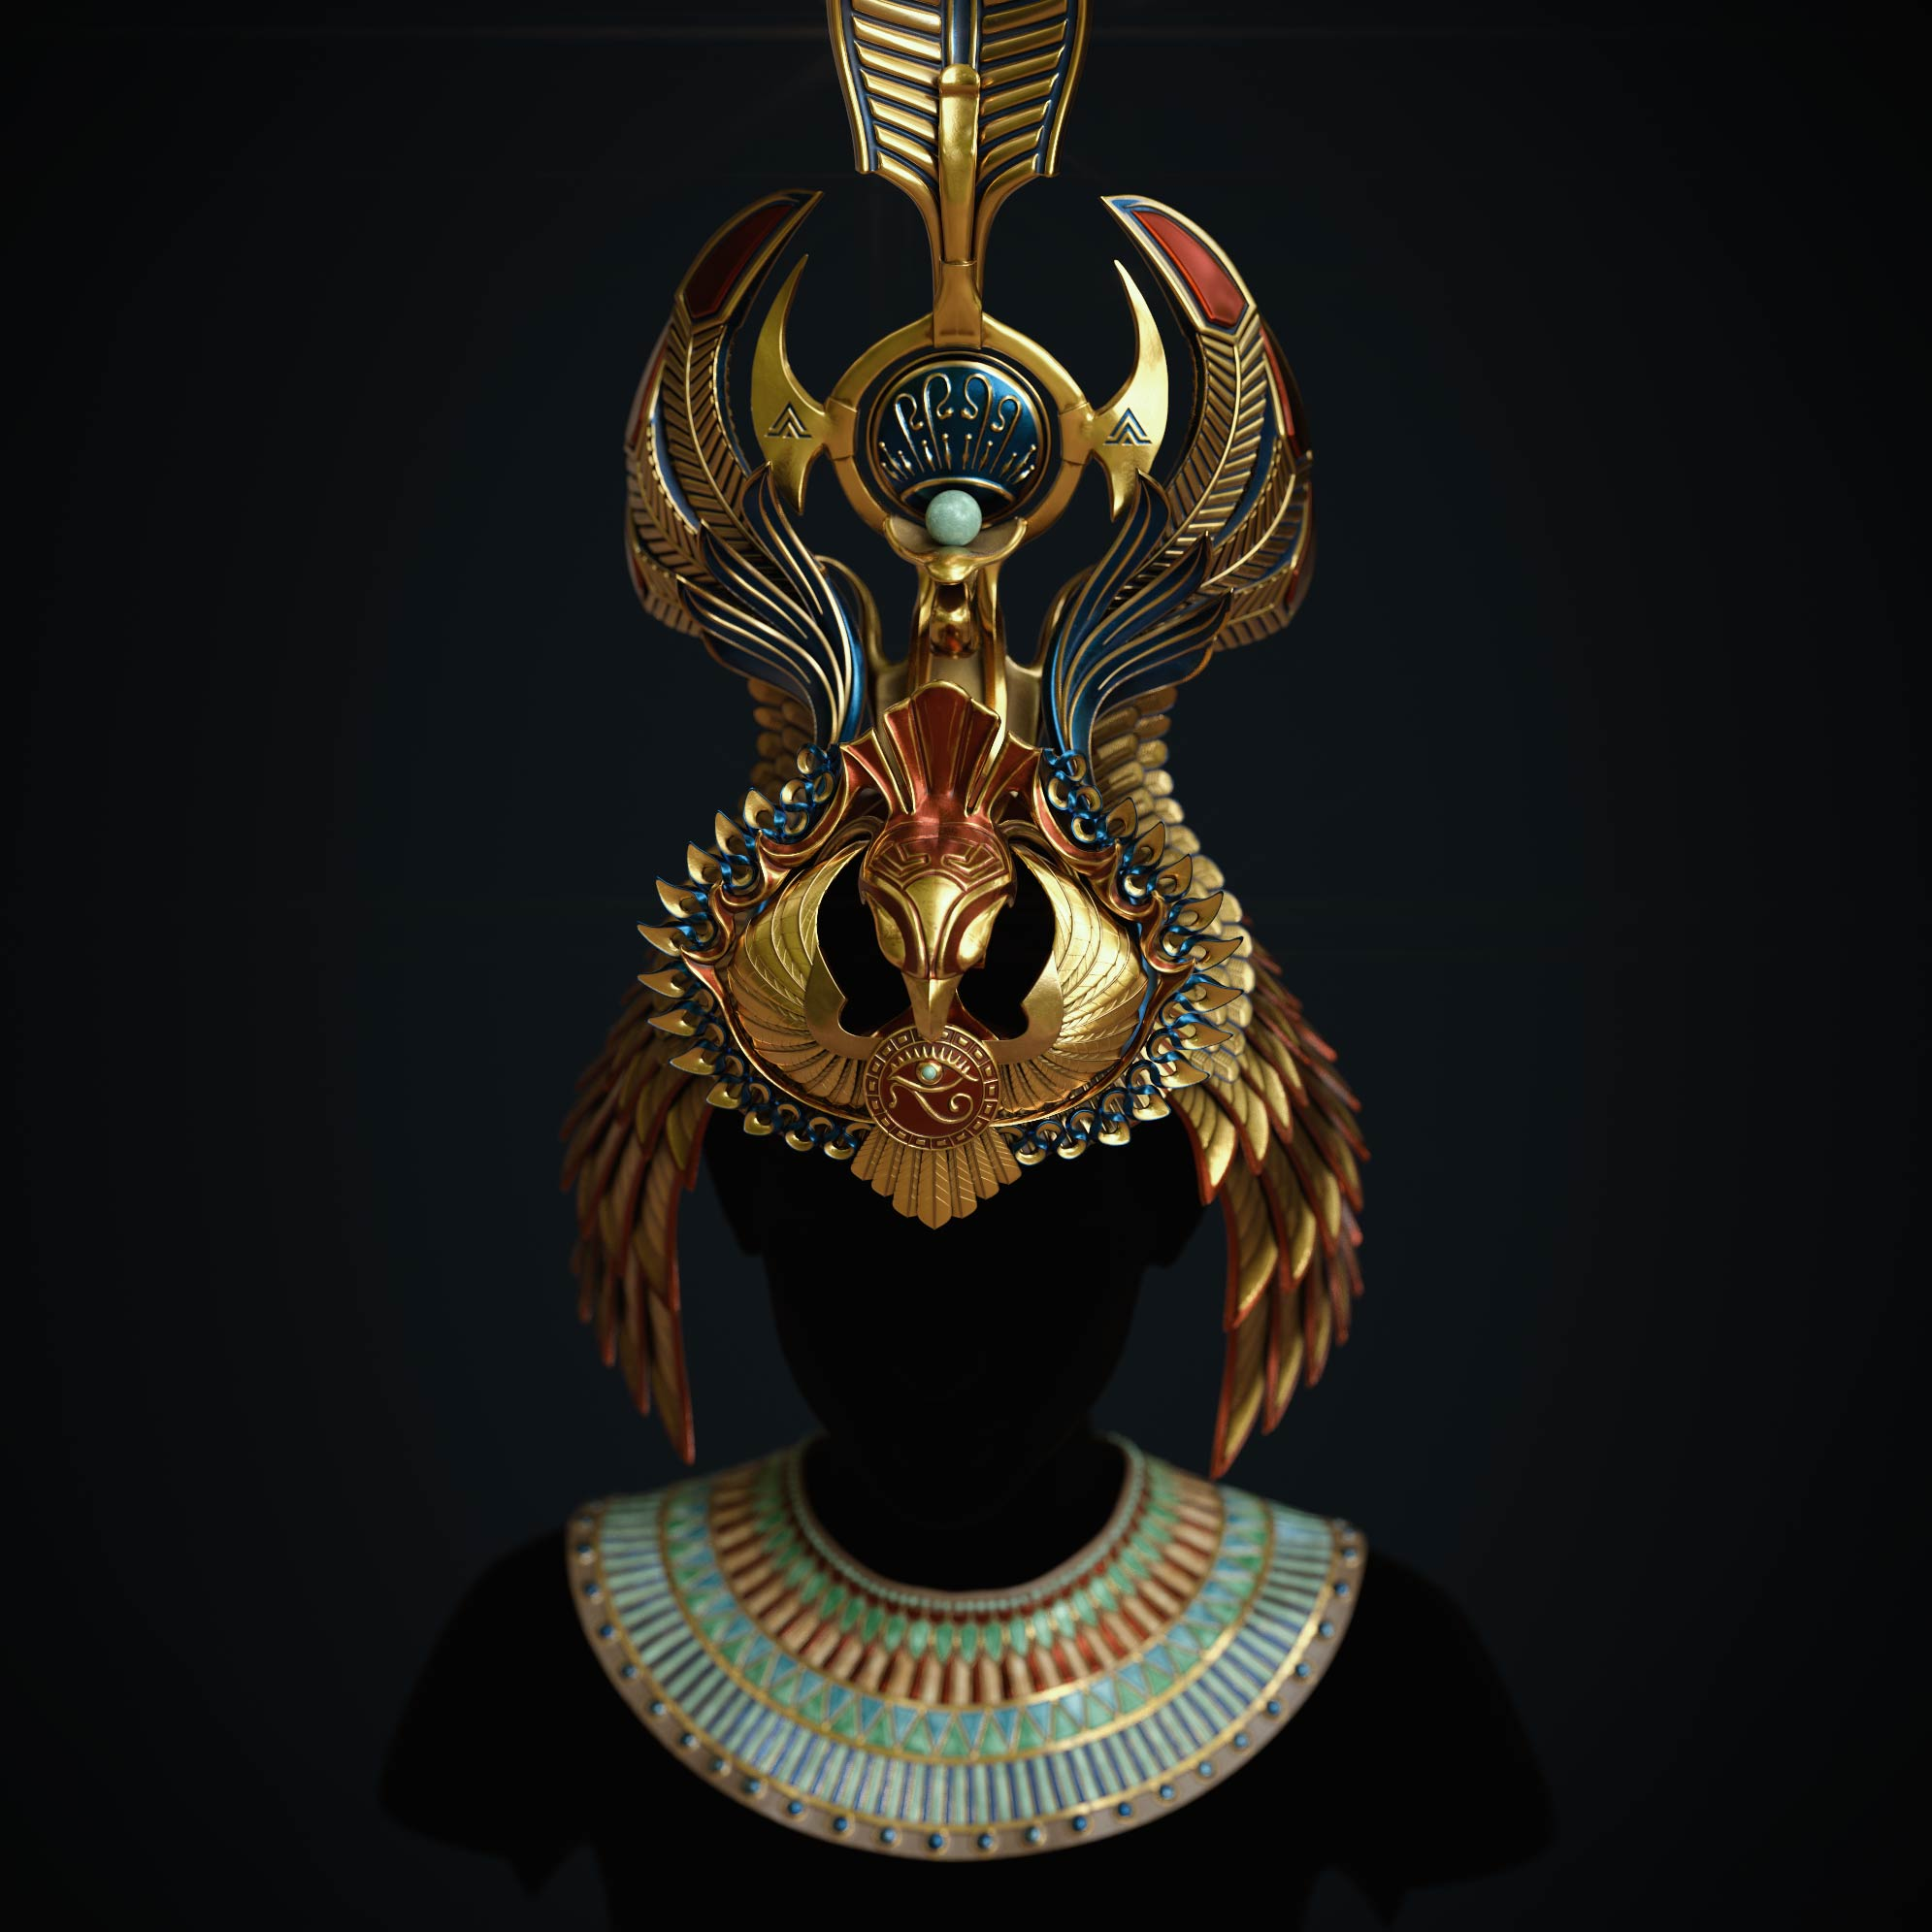 egyptian-queen-crown_substance_painter_texturing_3d_sculpting Egyptian queen crown